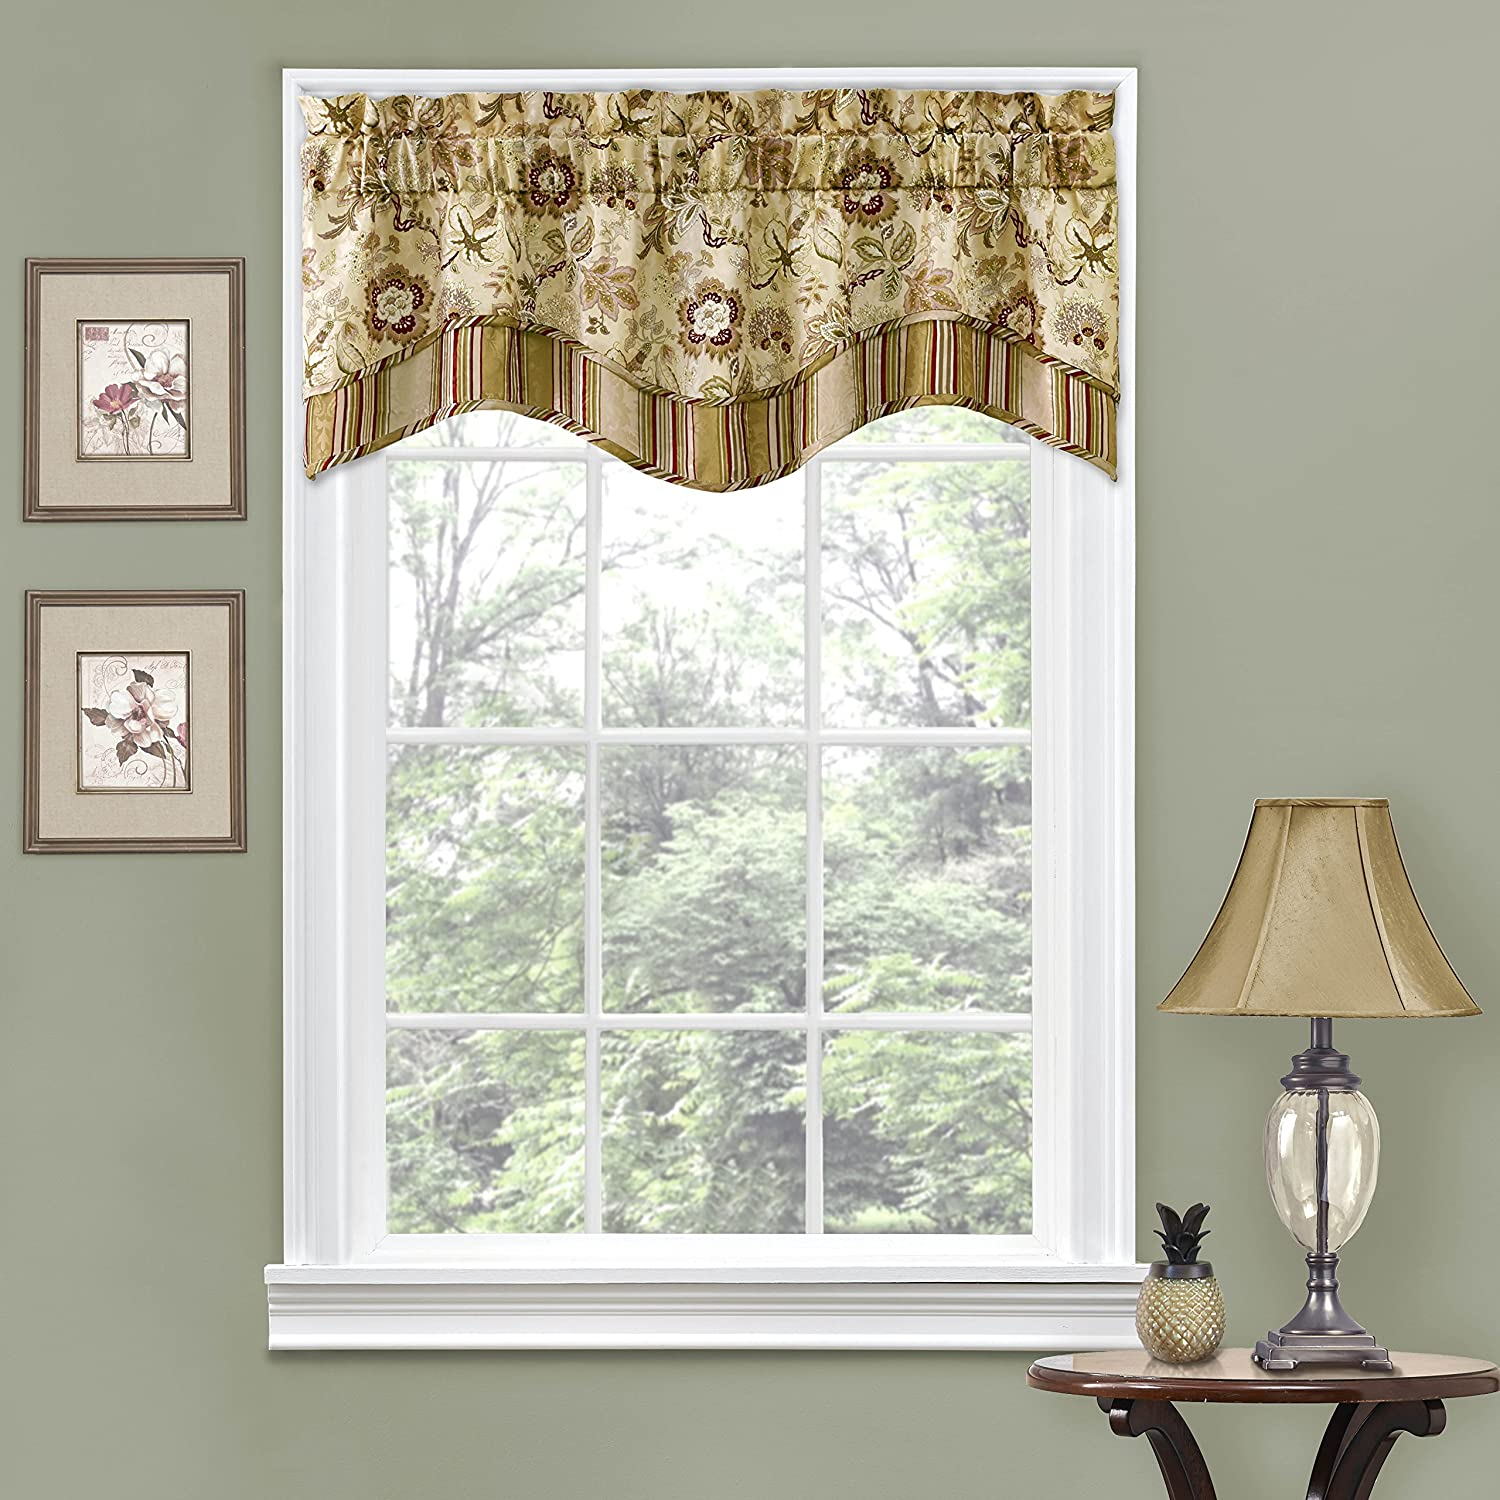 6 Waverly window valances for dining room or kitchen